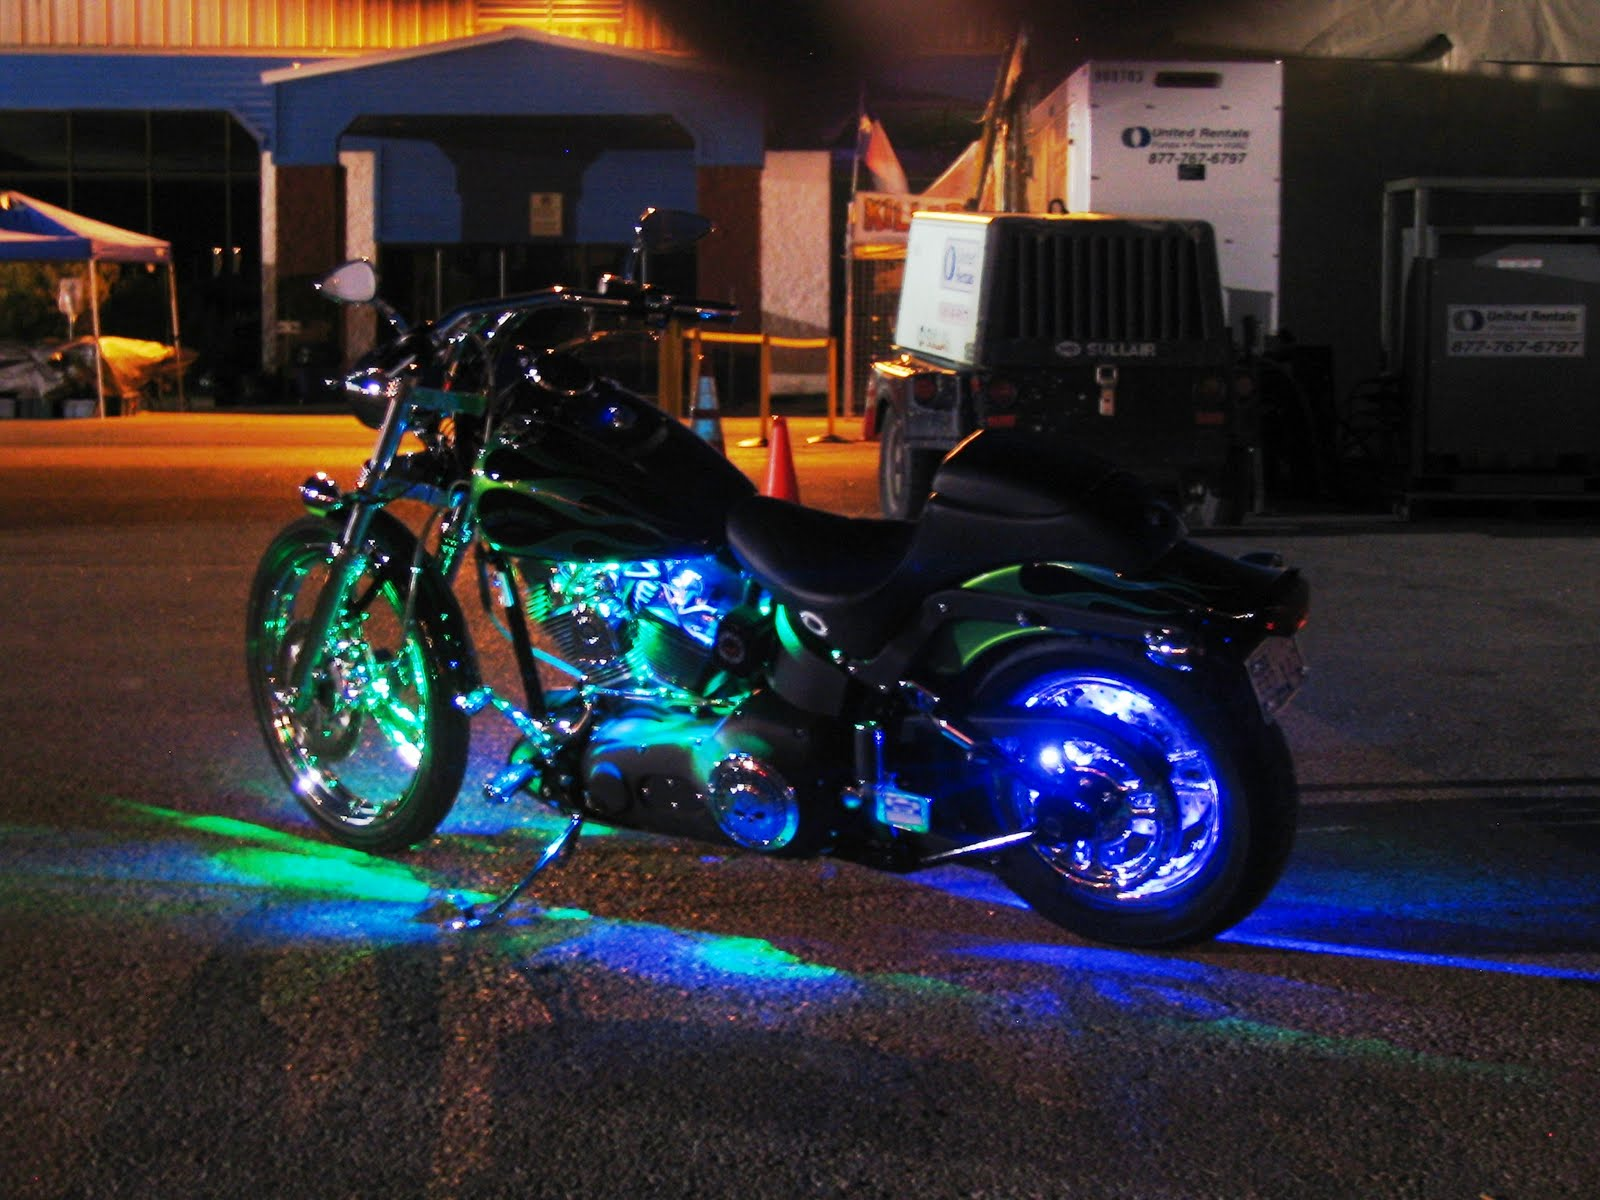 motorcycle led accent lighting can increase your visibility to other. Black Bedroom Furniture Sets. Home Design Ideas